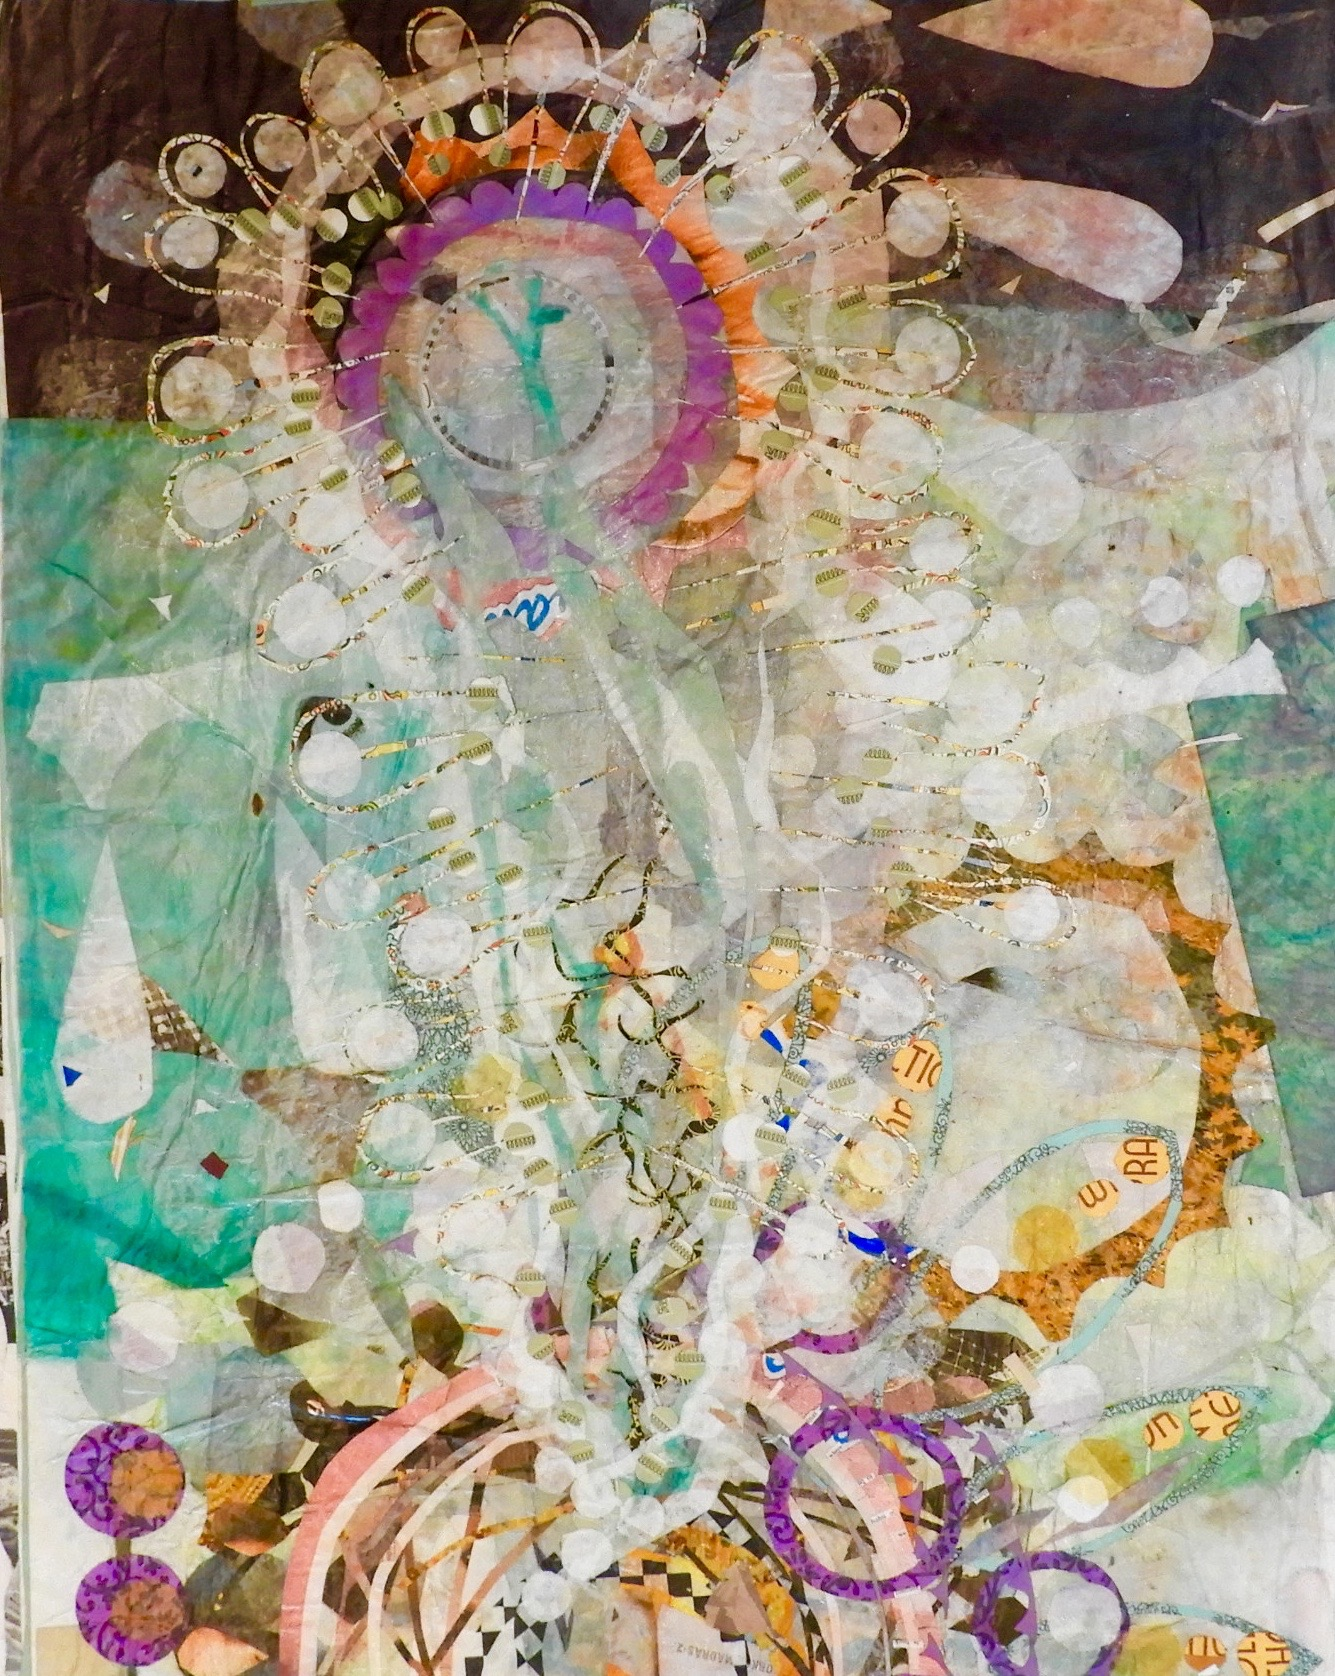 abstract-collage-art-devivolife-madonna